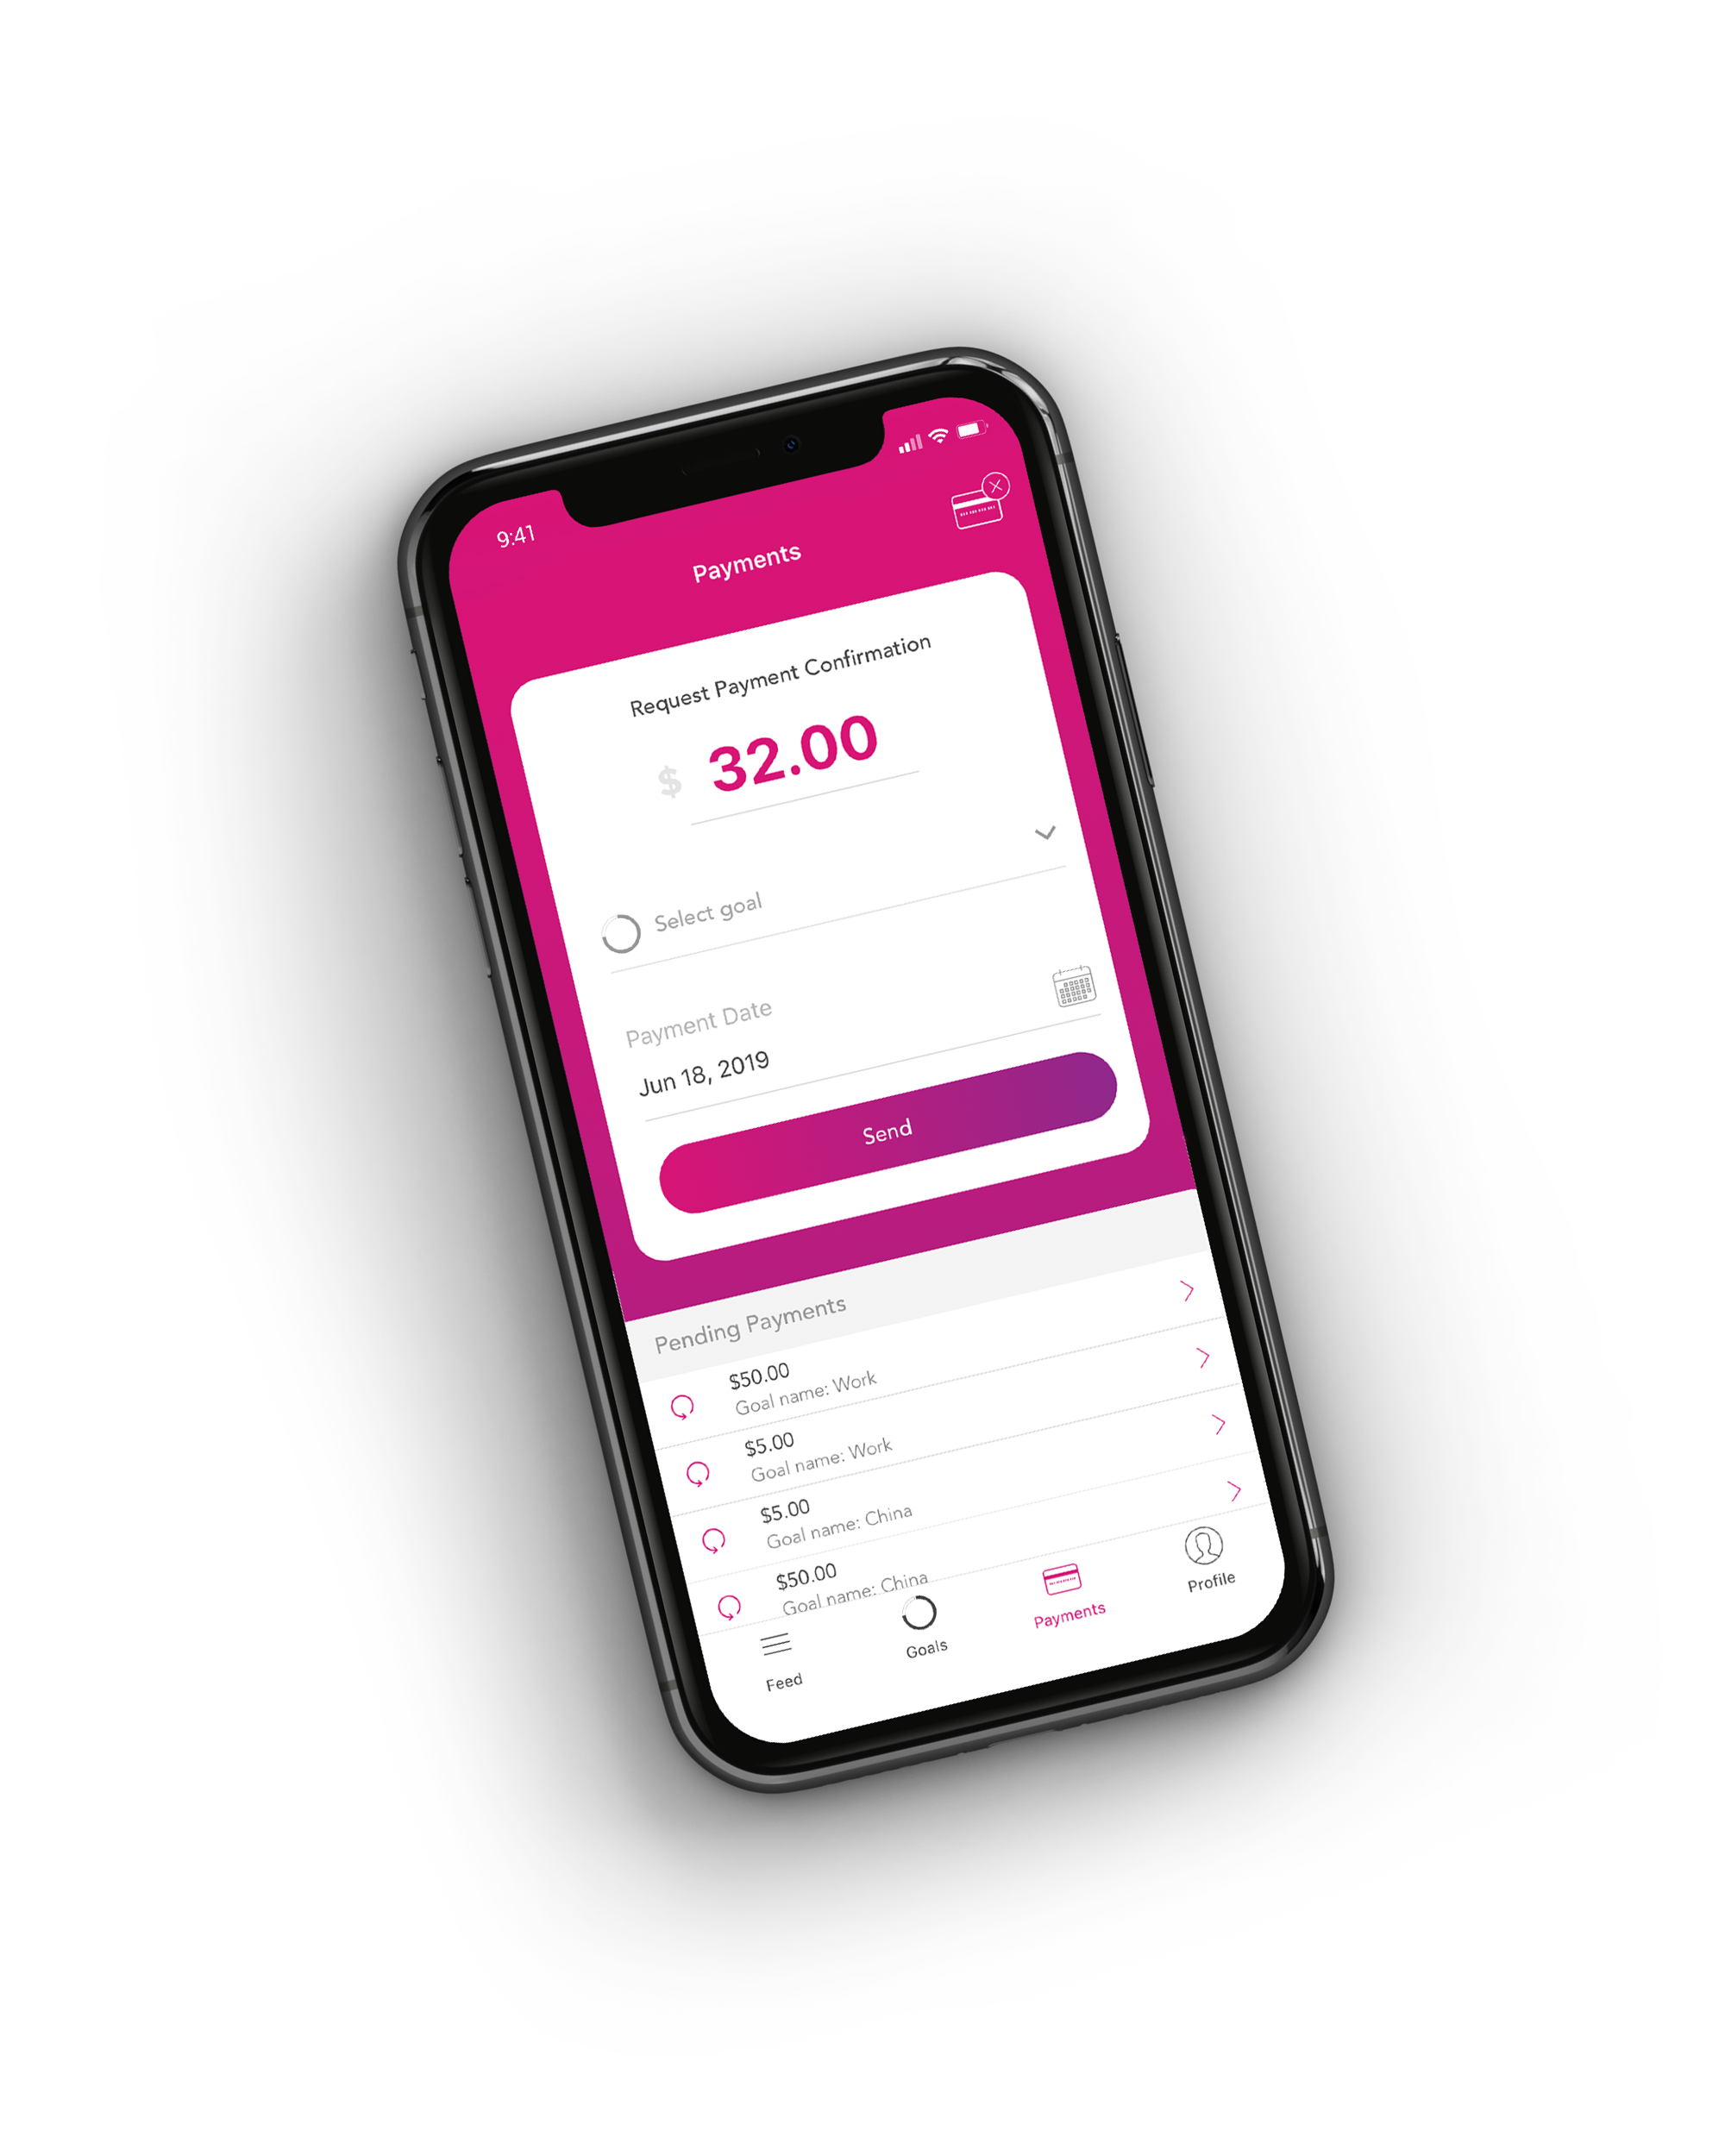 Record Payments - Let Paydby do the calculations and help you achieve your goals on time. Settle externally and record your transaction on the together app.